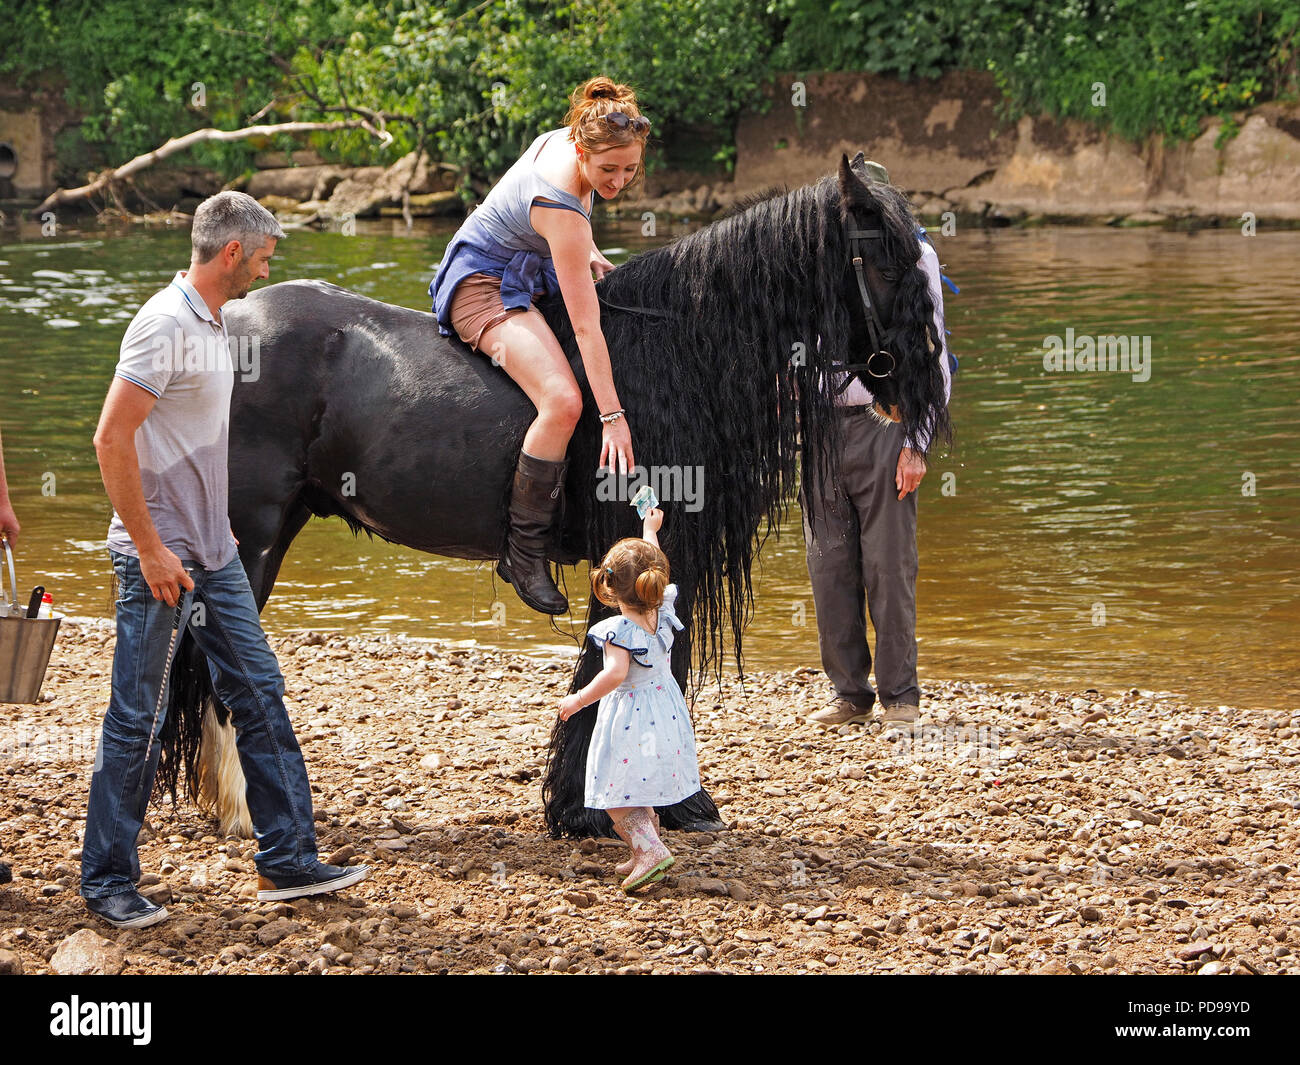 toddler passes money to mother riding black horse beside River Eden at Appleby Horse Fair in Appleby-in-Westmorland, Cumbria, England, UK - Stock Image